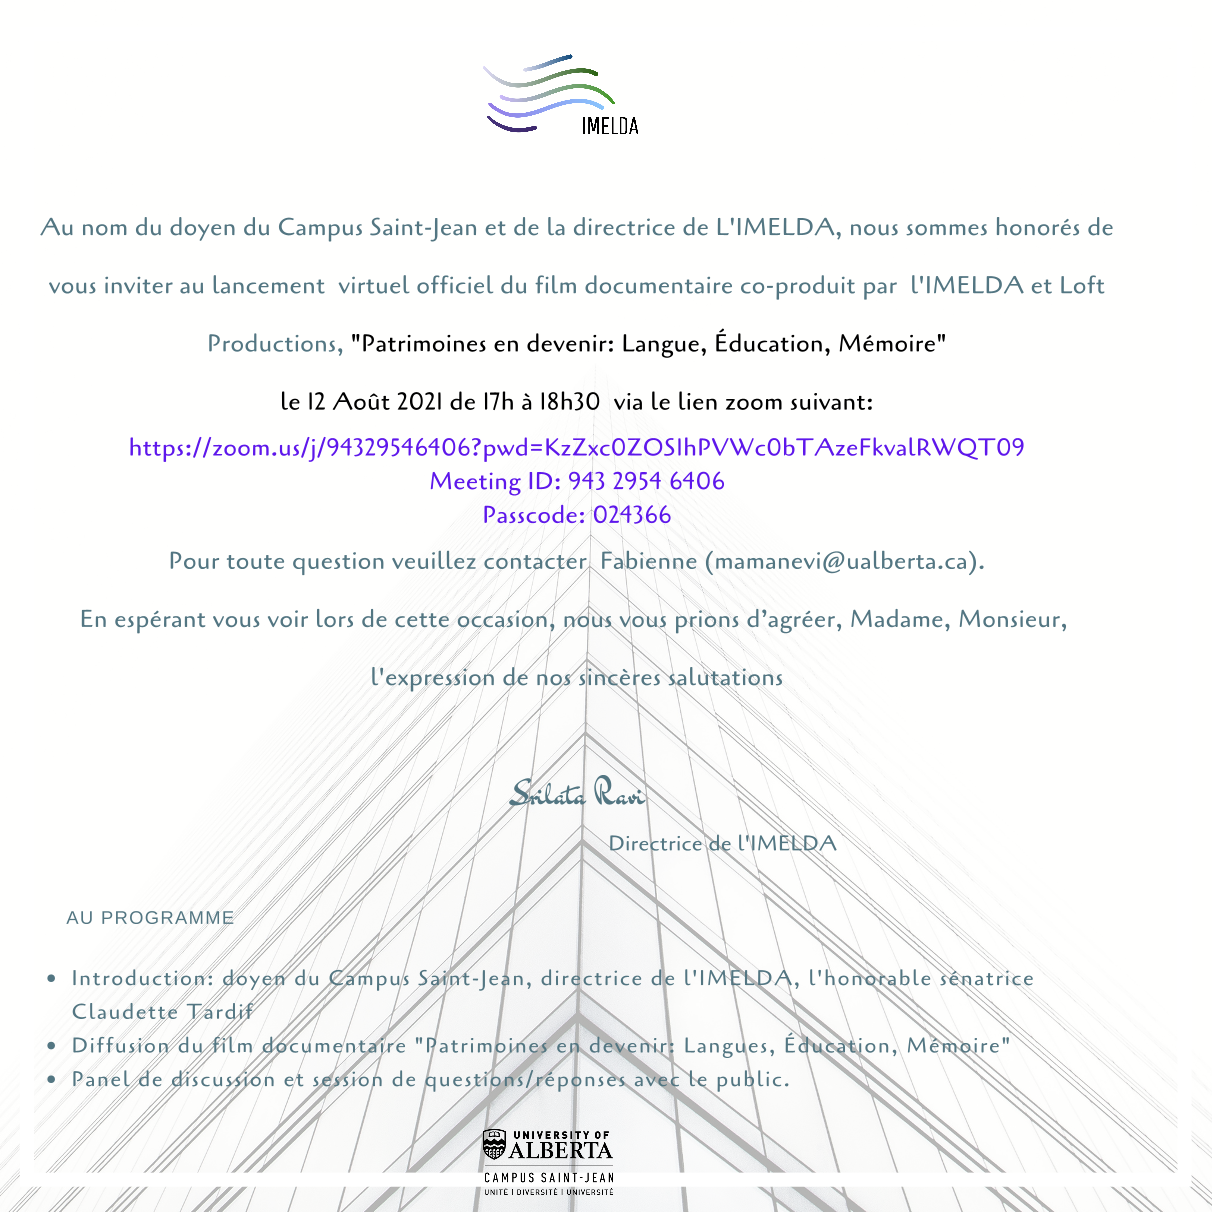 vf-invitation-film-documentaire--12-aout-2021-1.png